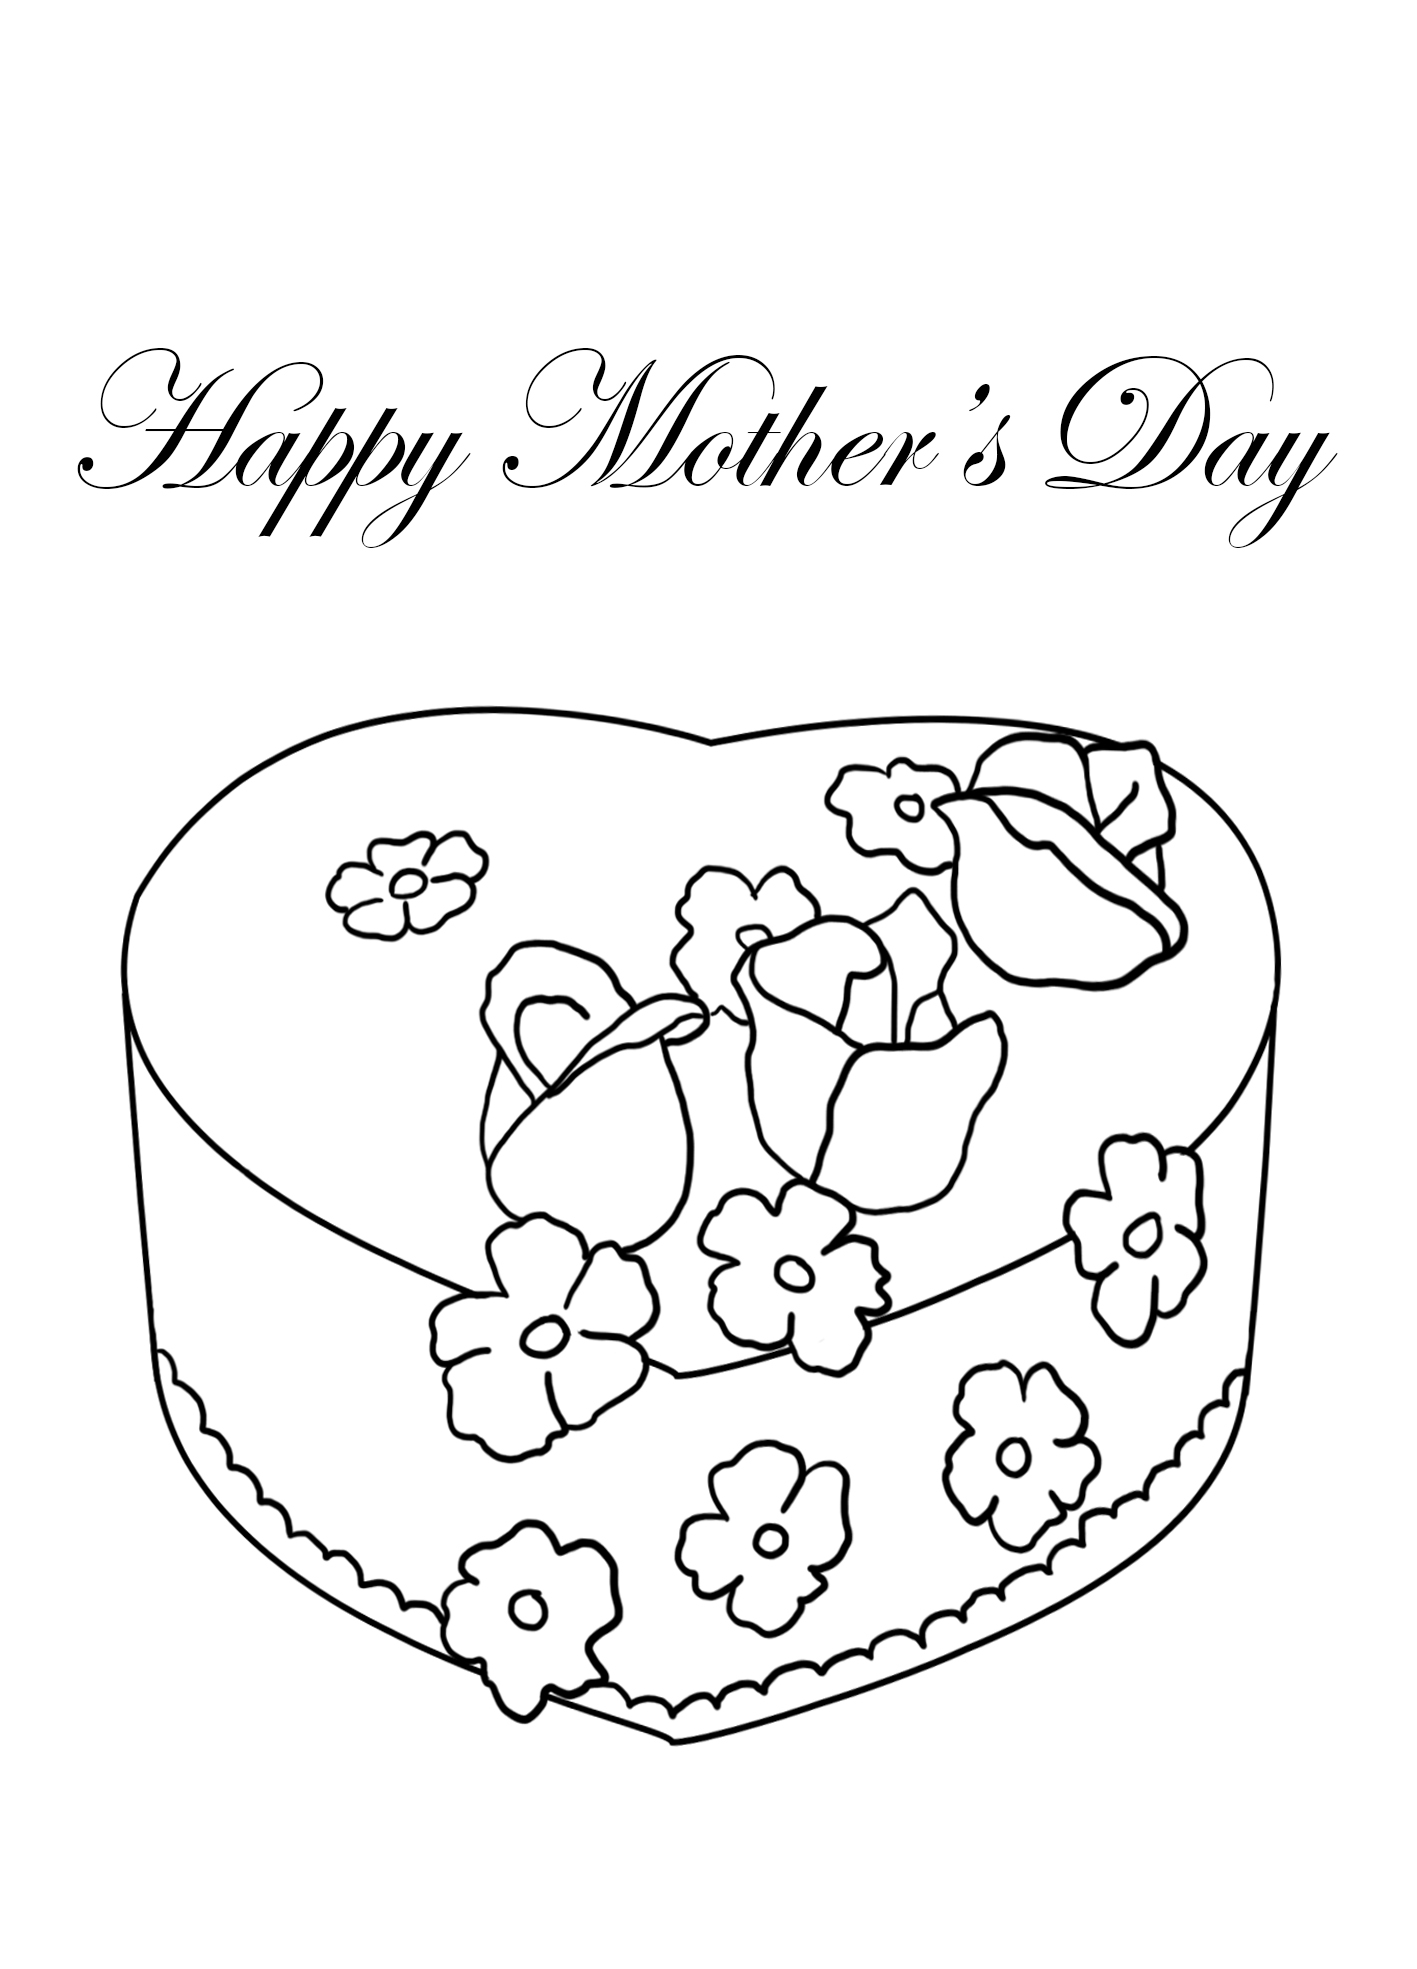 Cake coloring for Mother's day